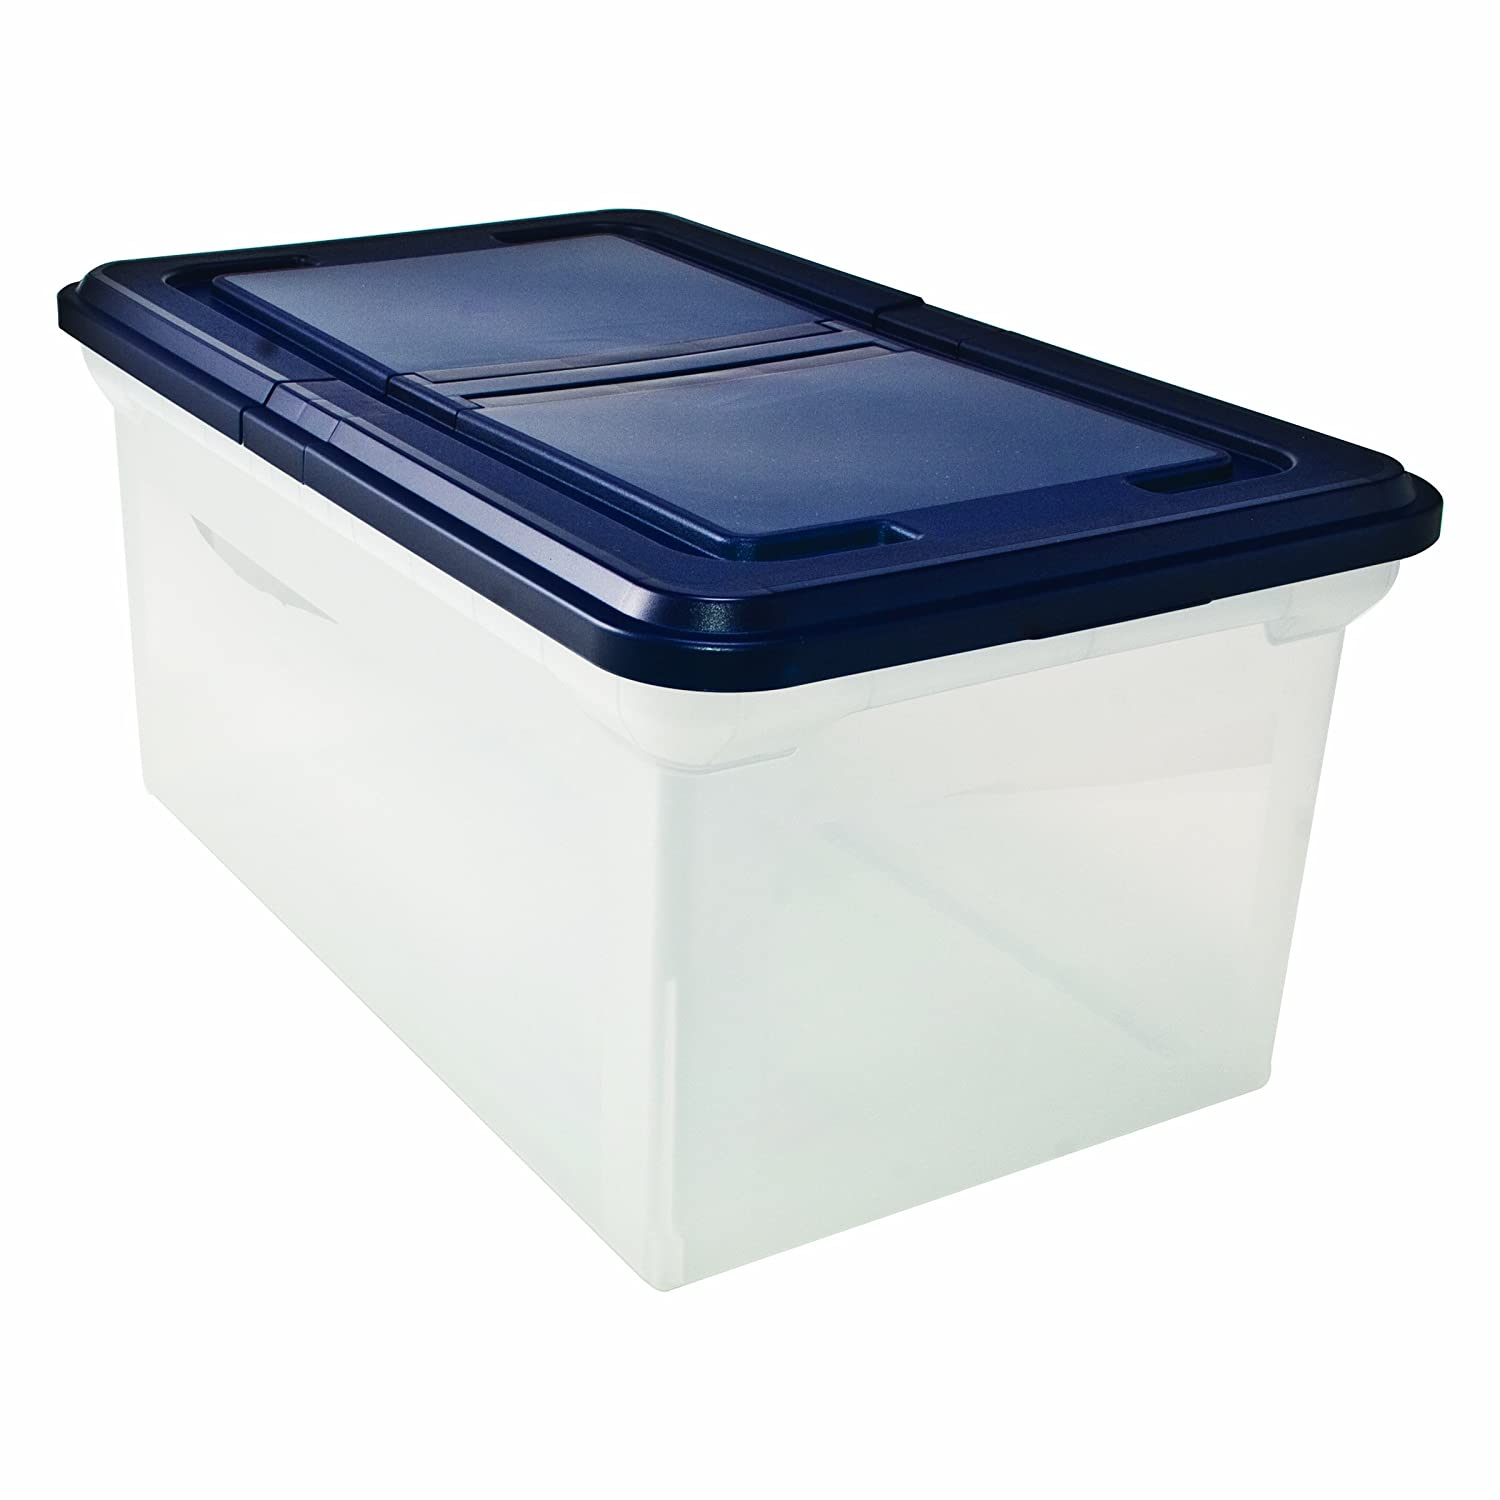 Amazon.com : Innovative Storage Designs 55797 File Tote With Hinged Lid,  Letter, Plastic, Clear/Navy : Flossing Products : Office Products